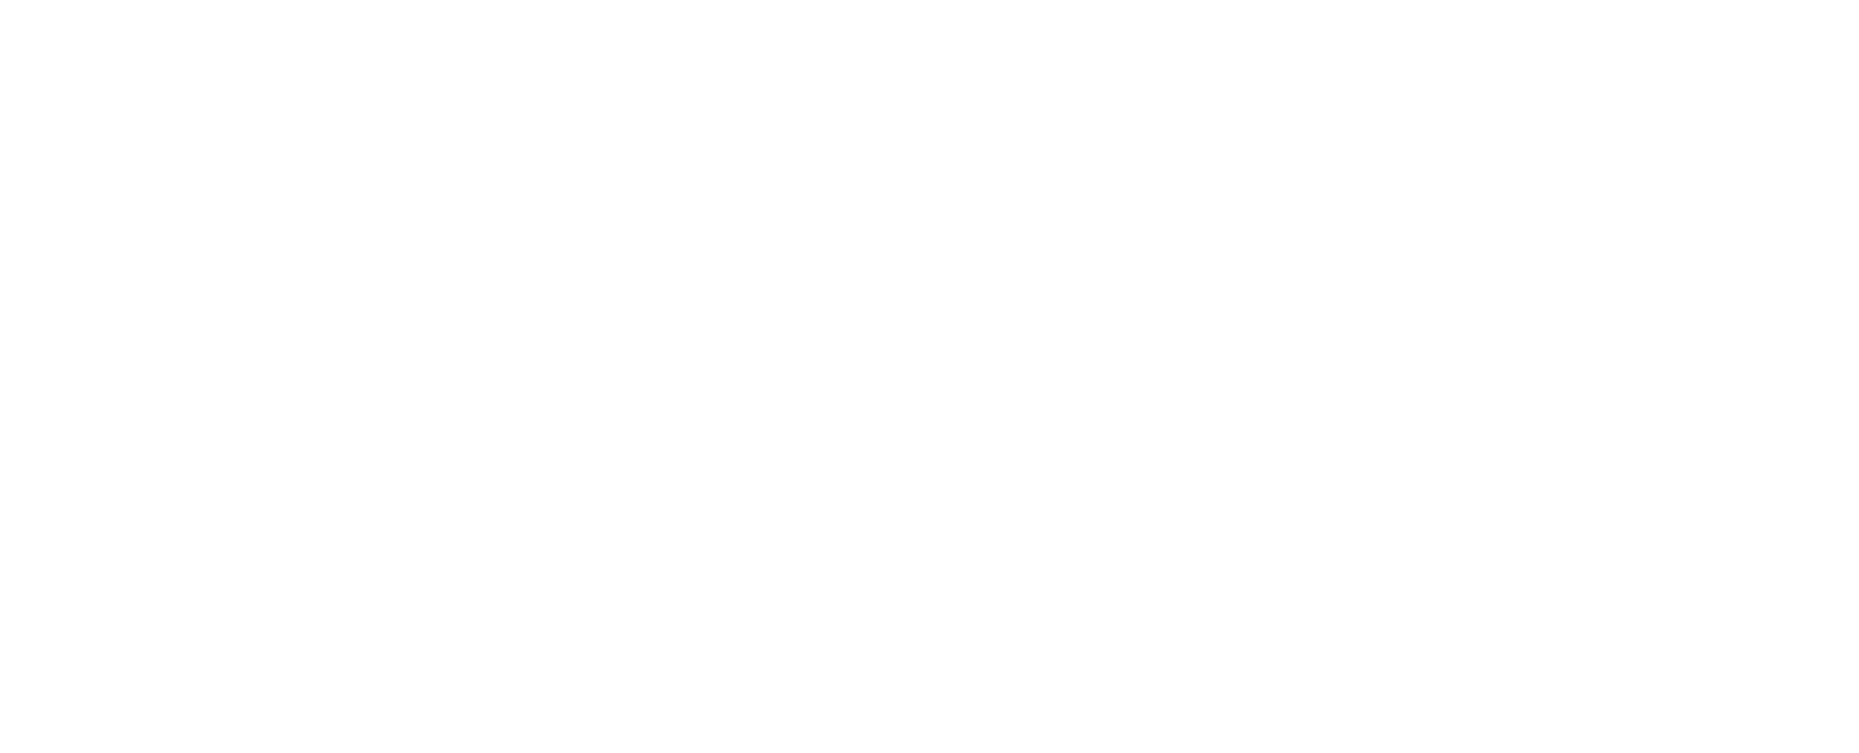 World Leasing Yearbook 2019 | World Leasing Yearbook